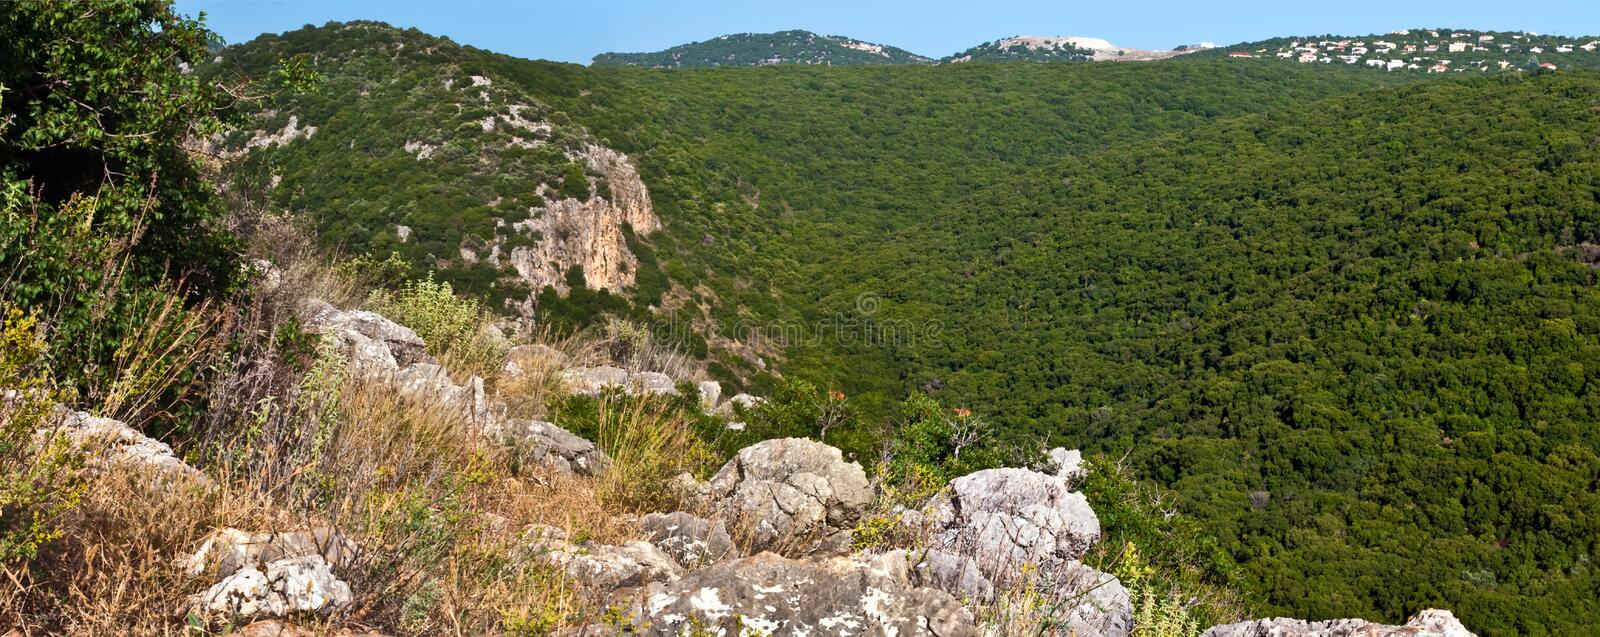 Nature in Israel. royalty free stock photo